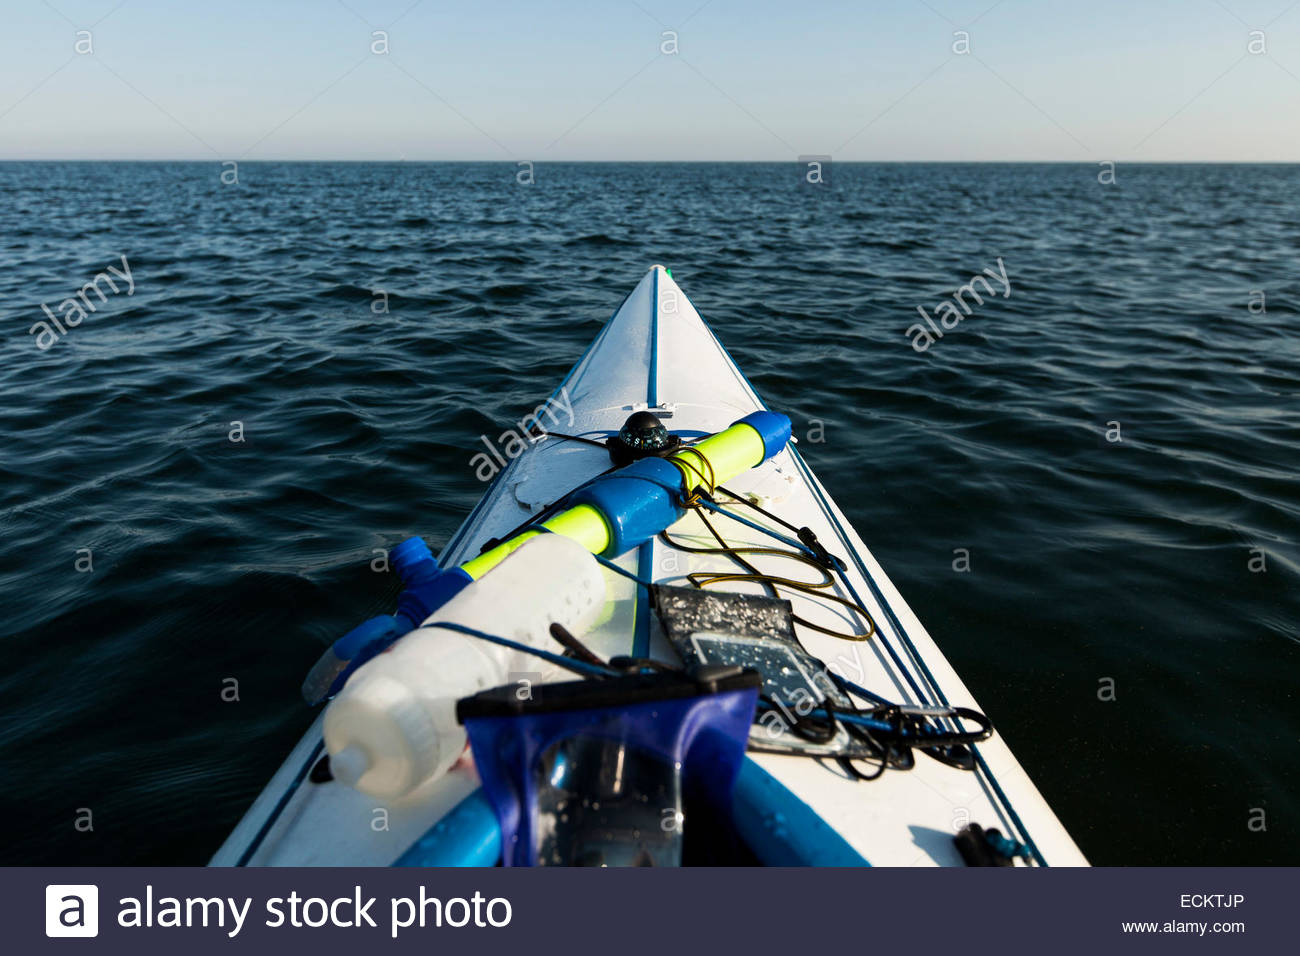 Cropped image of kayak on sea - Stock Image